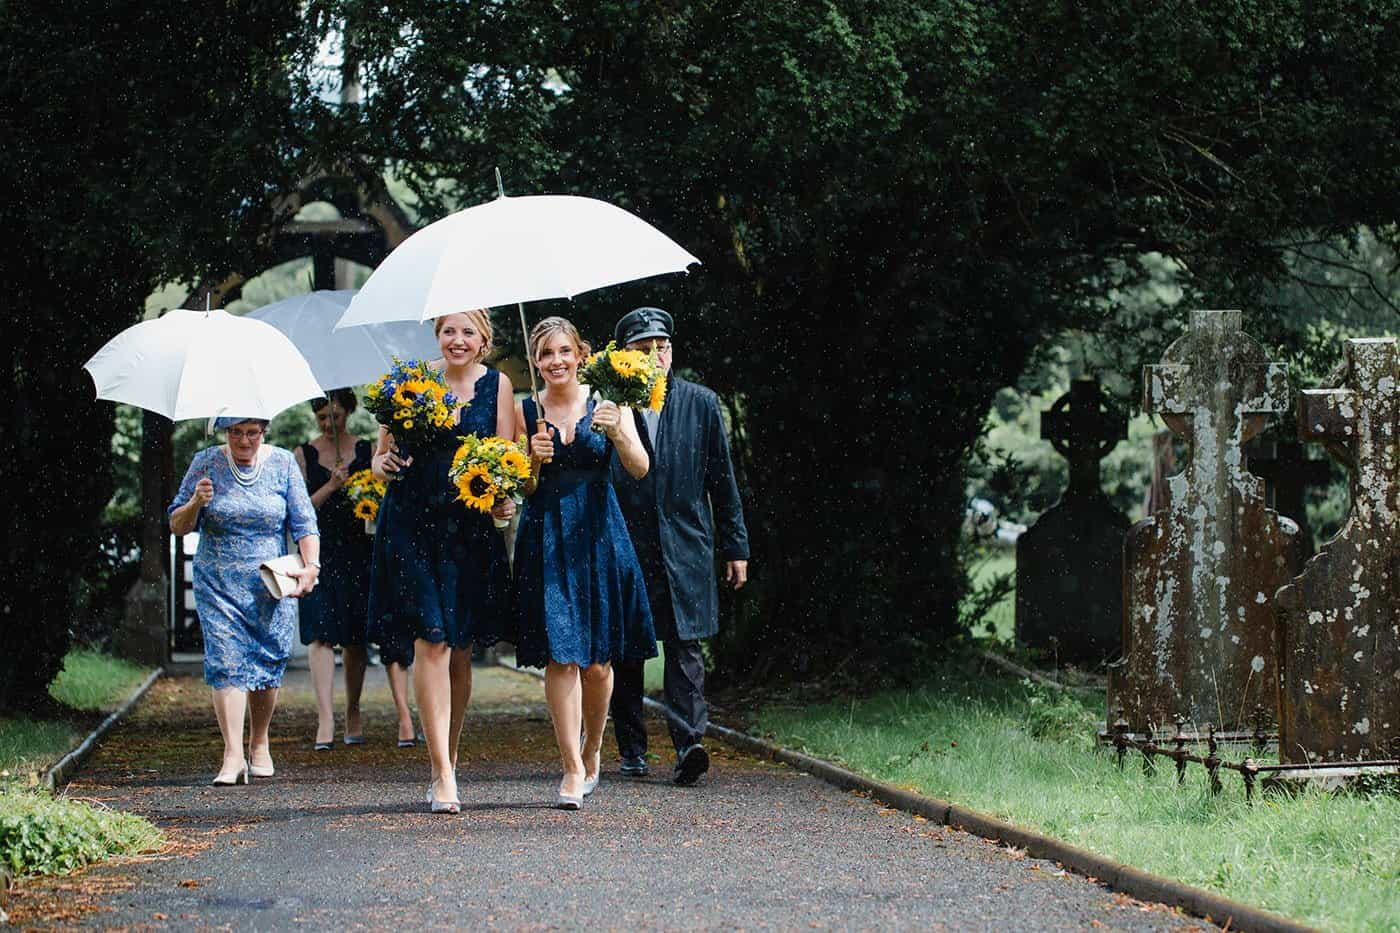 bridesmaids walking in the rain